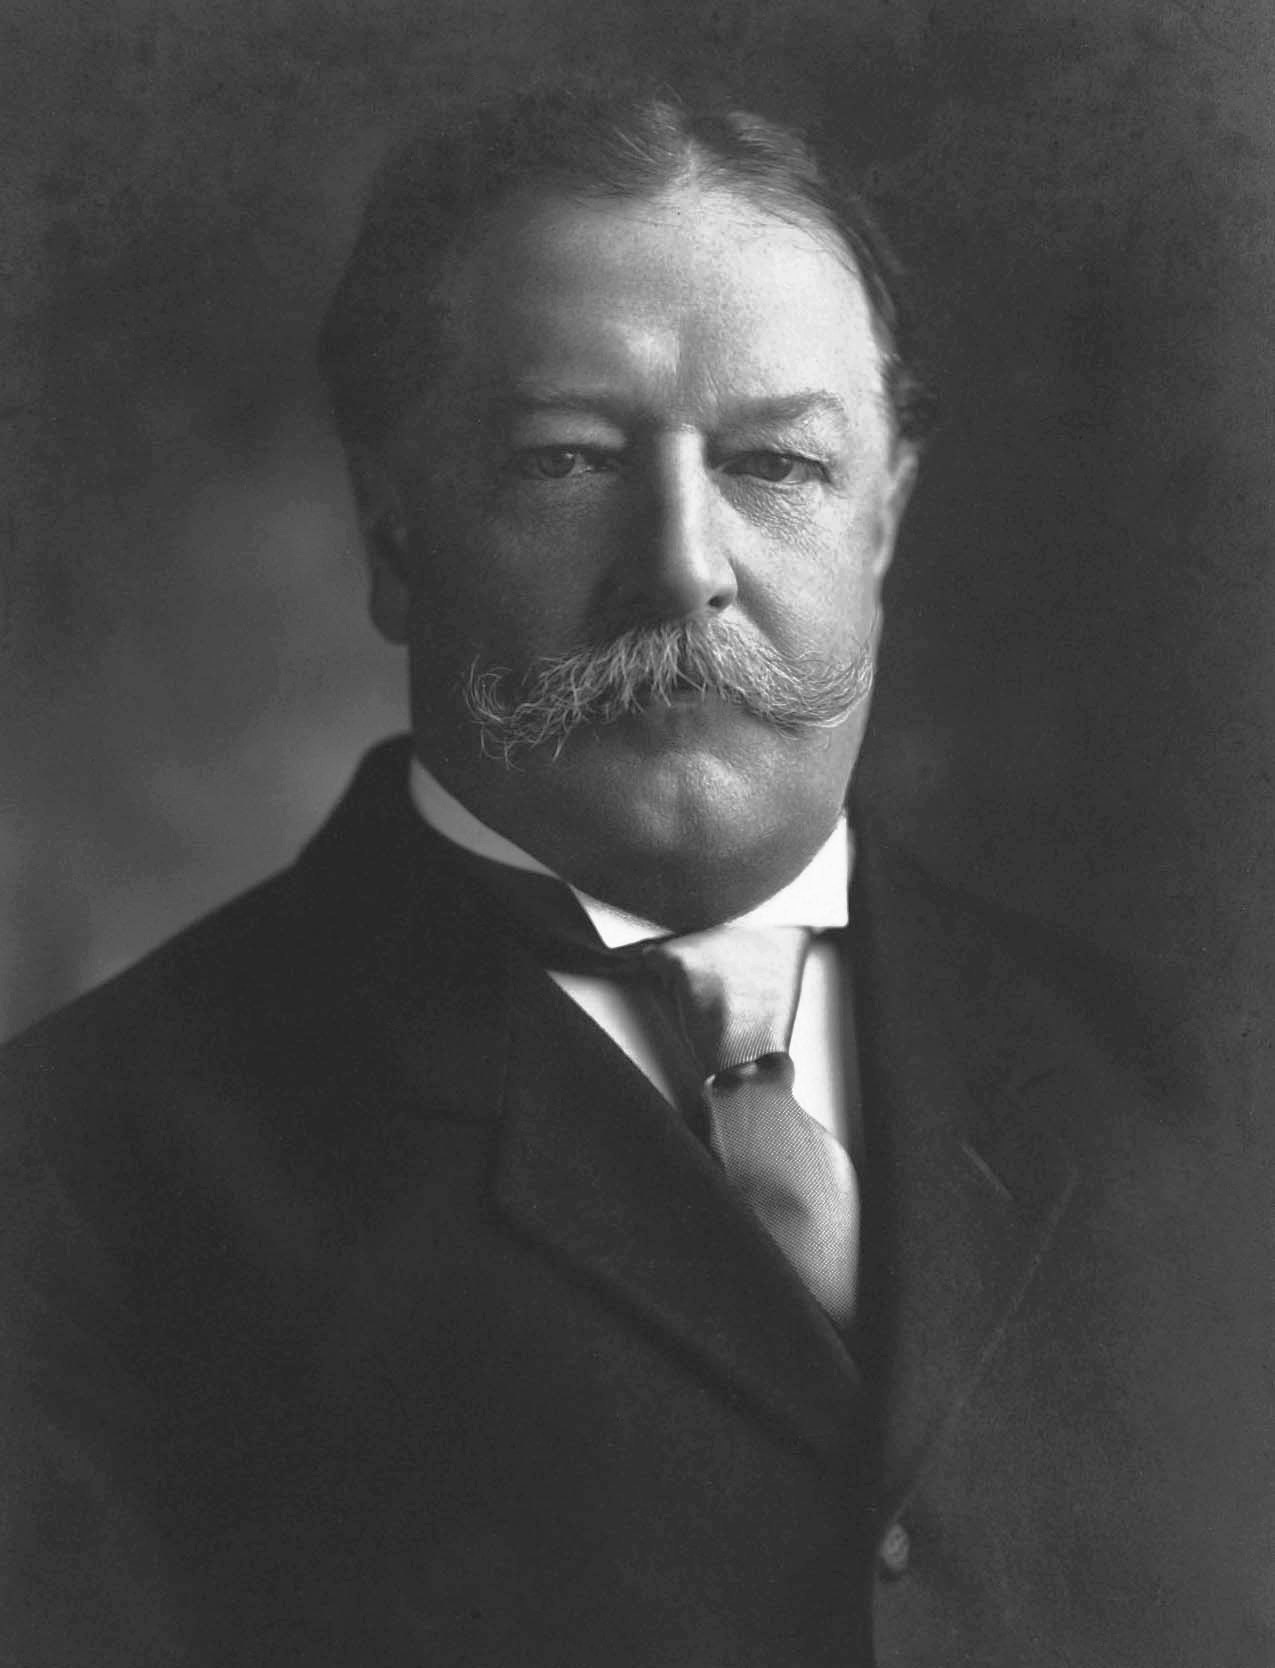 William_Howard_Taft_-_Harris_and_Ewing.jpg (1275×1668)